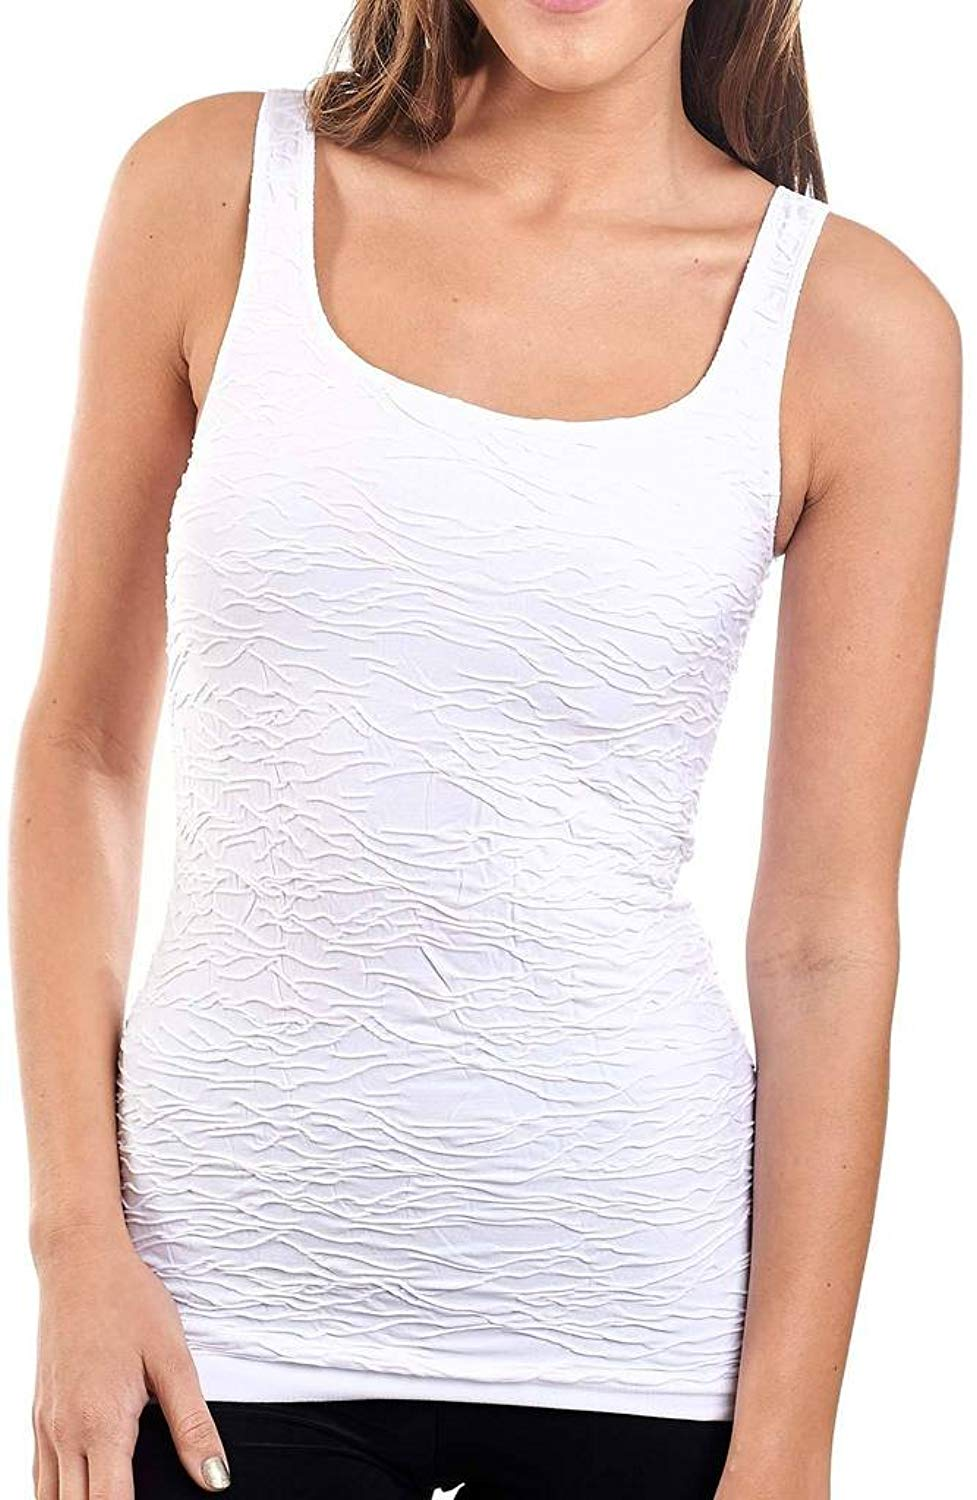 5dff6f99fadc4 Get Quotations · Joseph Ribkoff White Textured Ruched Tank Top Cami Style  161990